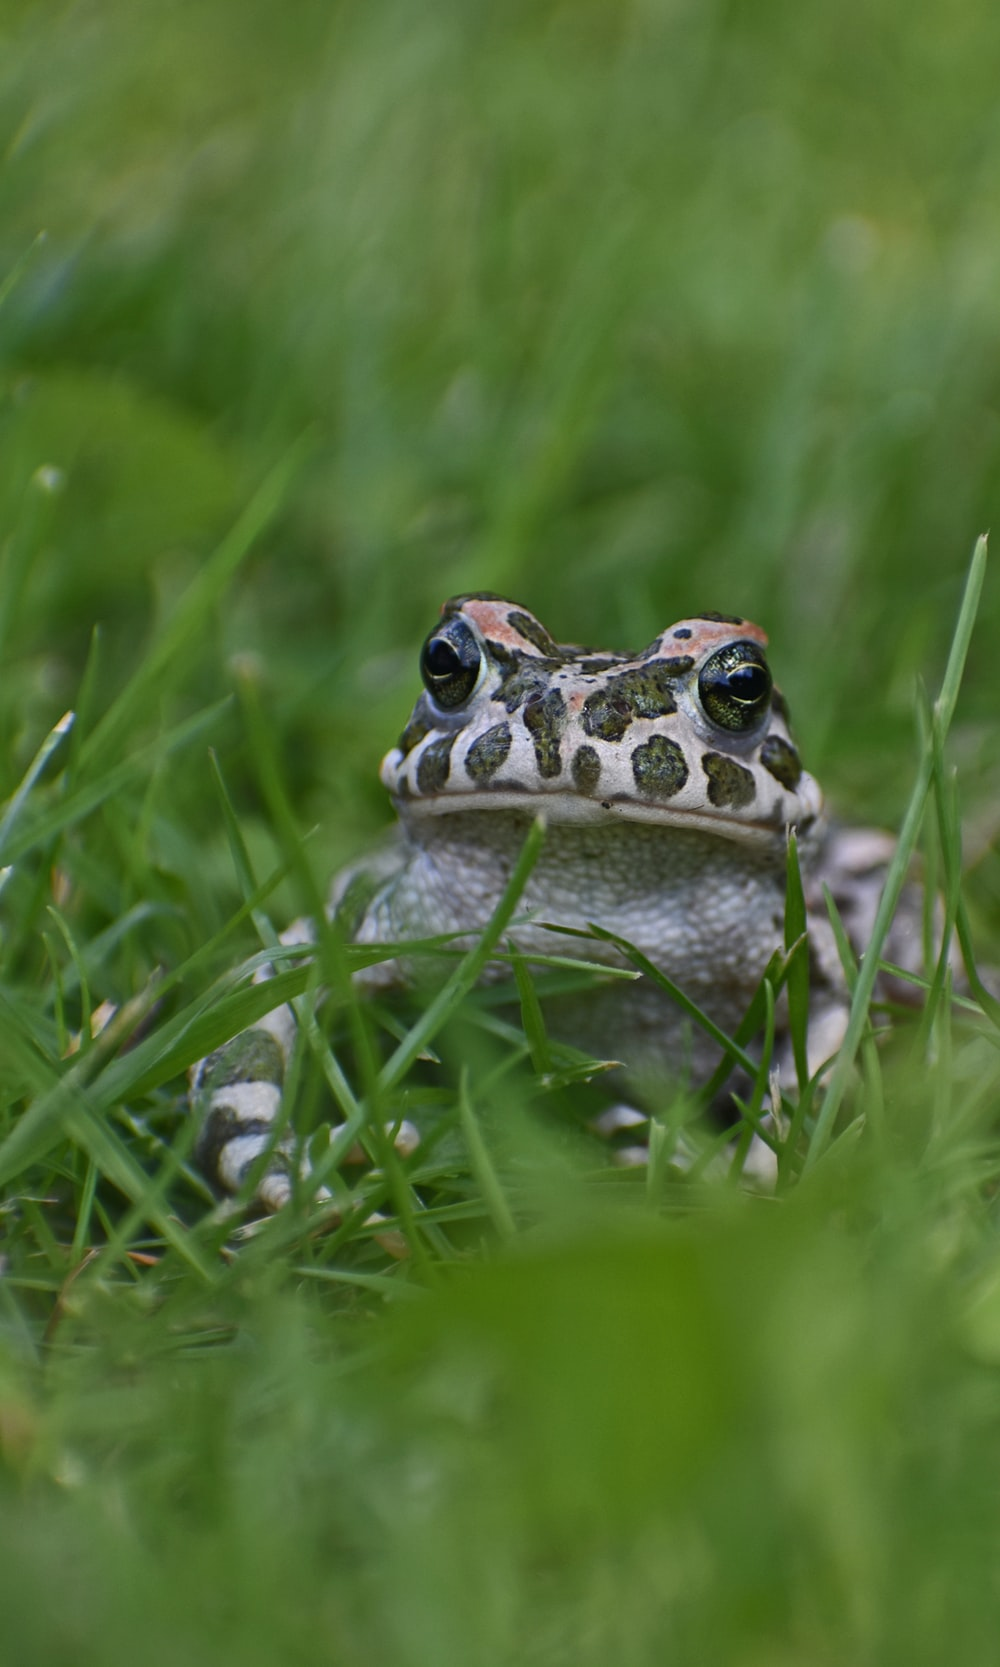 brown and white frog on green grass